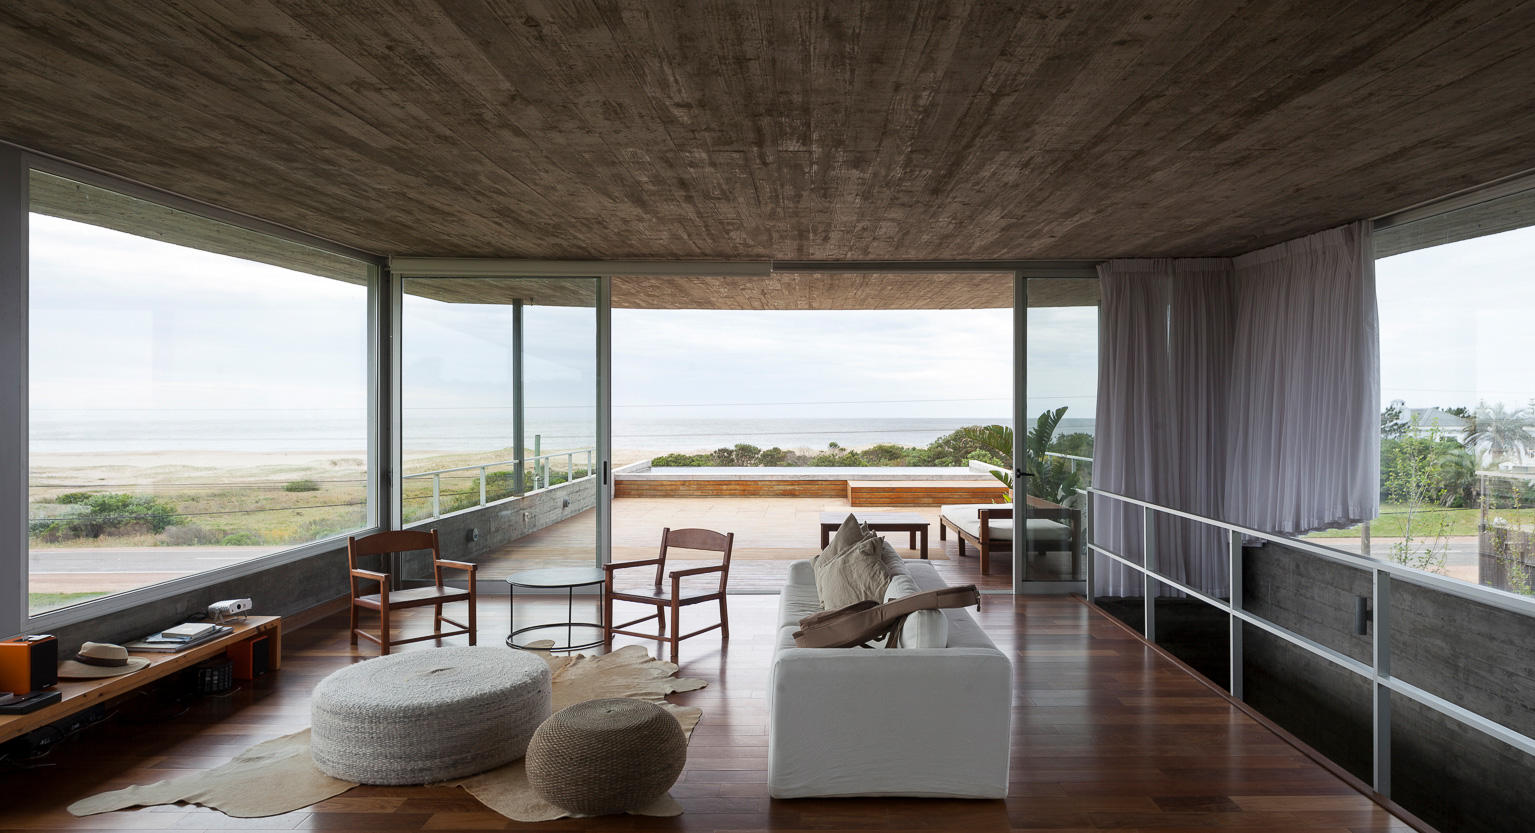 Is This The Ultimate Modernist Beach House?